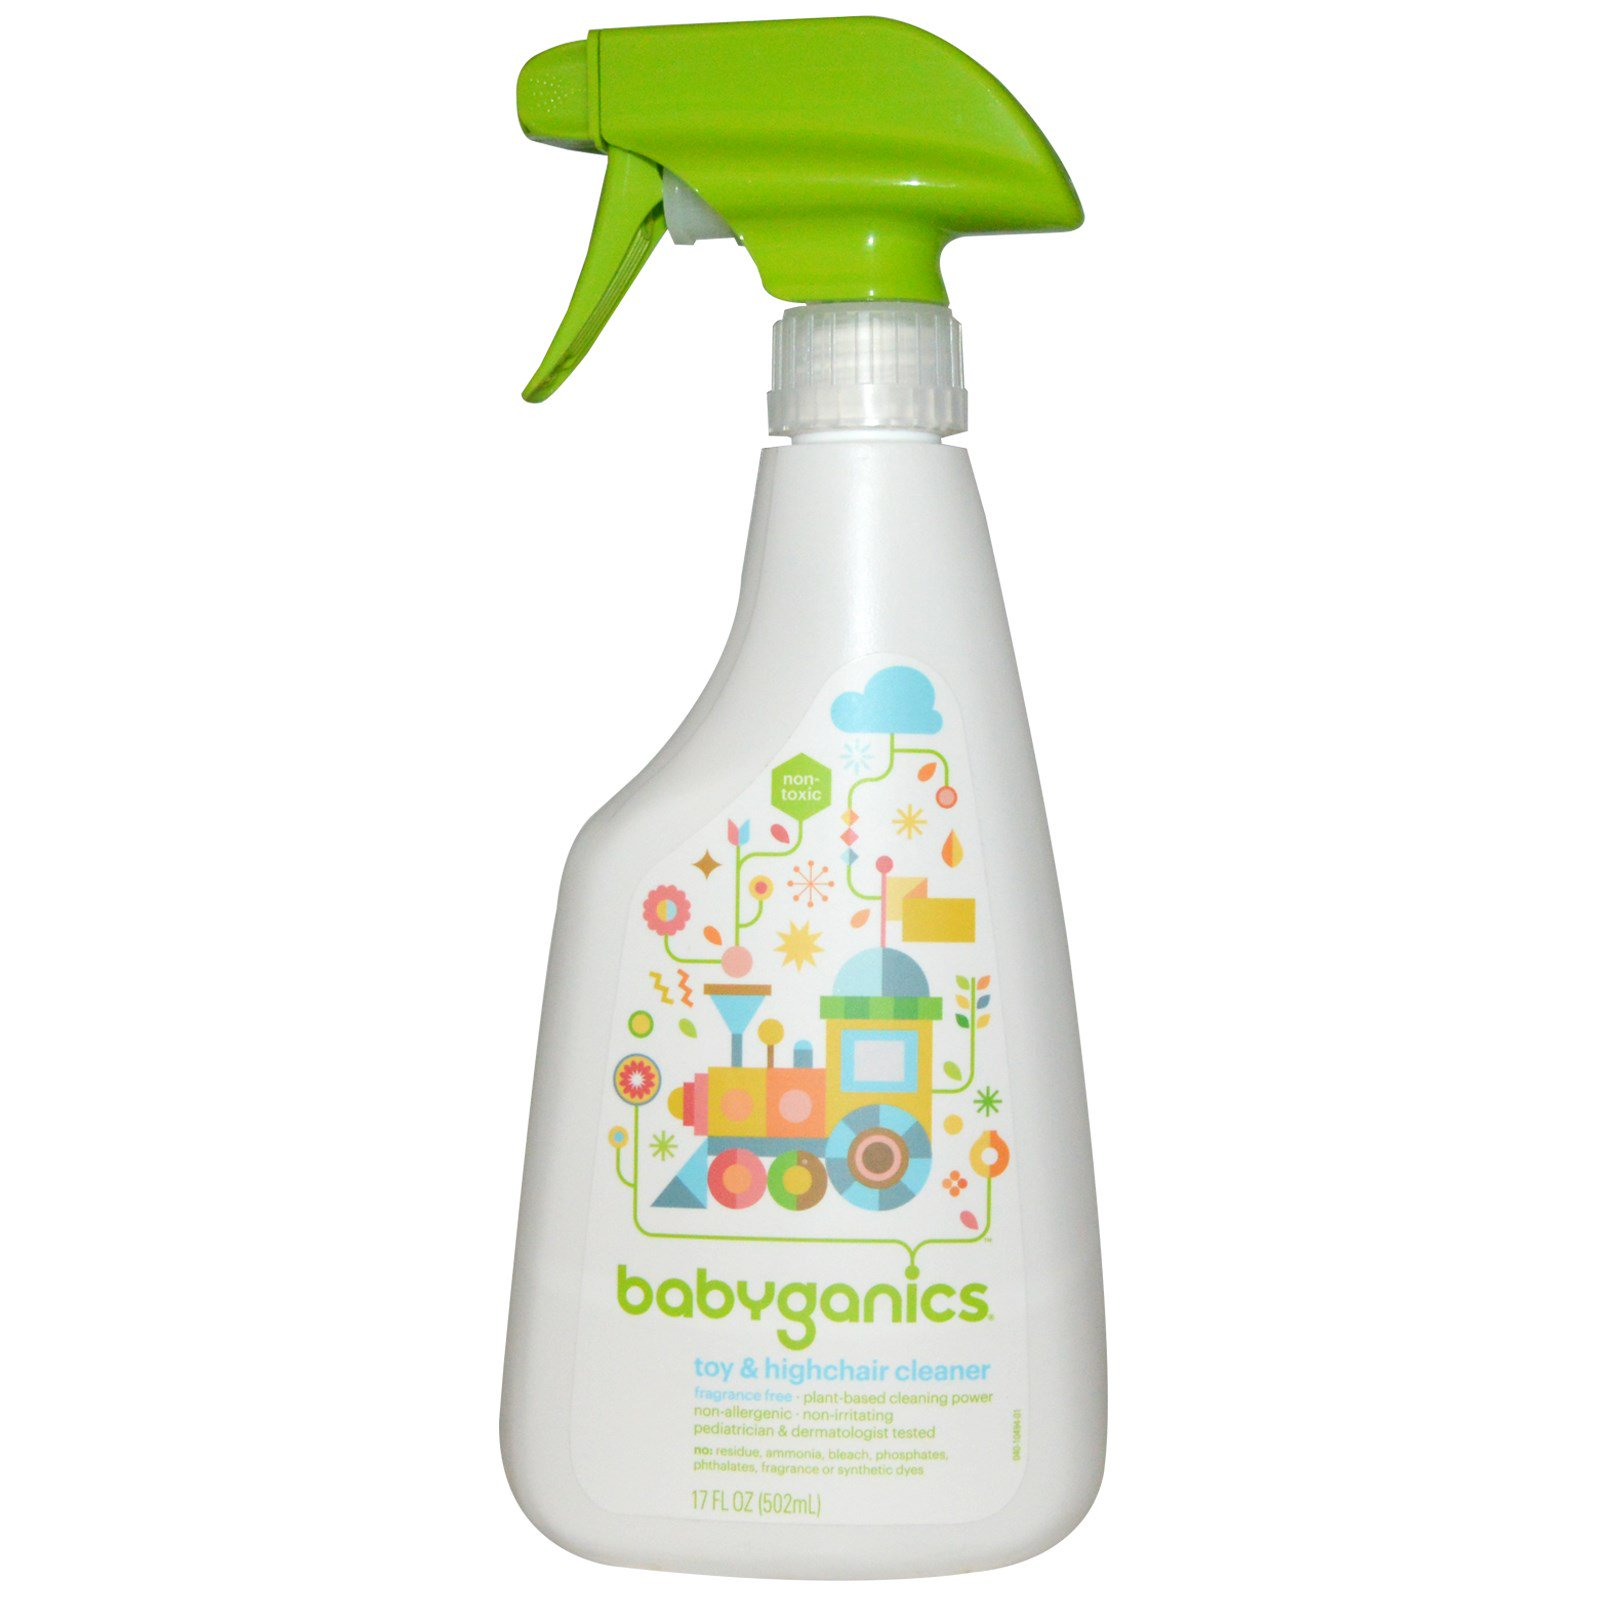 BabyGanics Toy u0026 Highchair Cleaner Fragrance Free 17 fl oz (502 ml  sc 1 st  iHerb.com & BabyGanics Toy u0026 Highchair Cleaner Fragrance Free 17 fl oz (502 ...